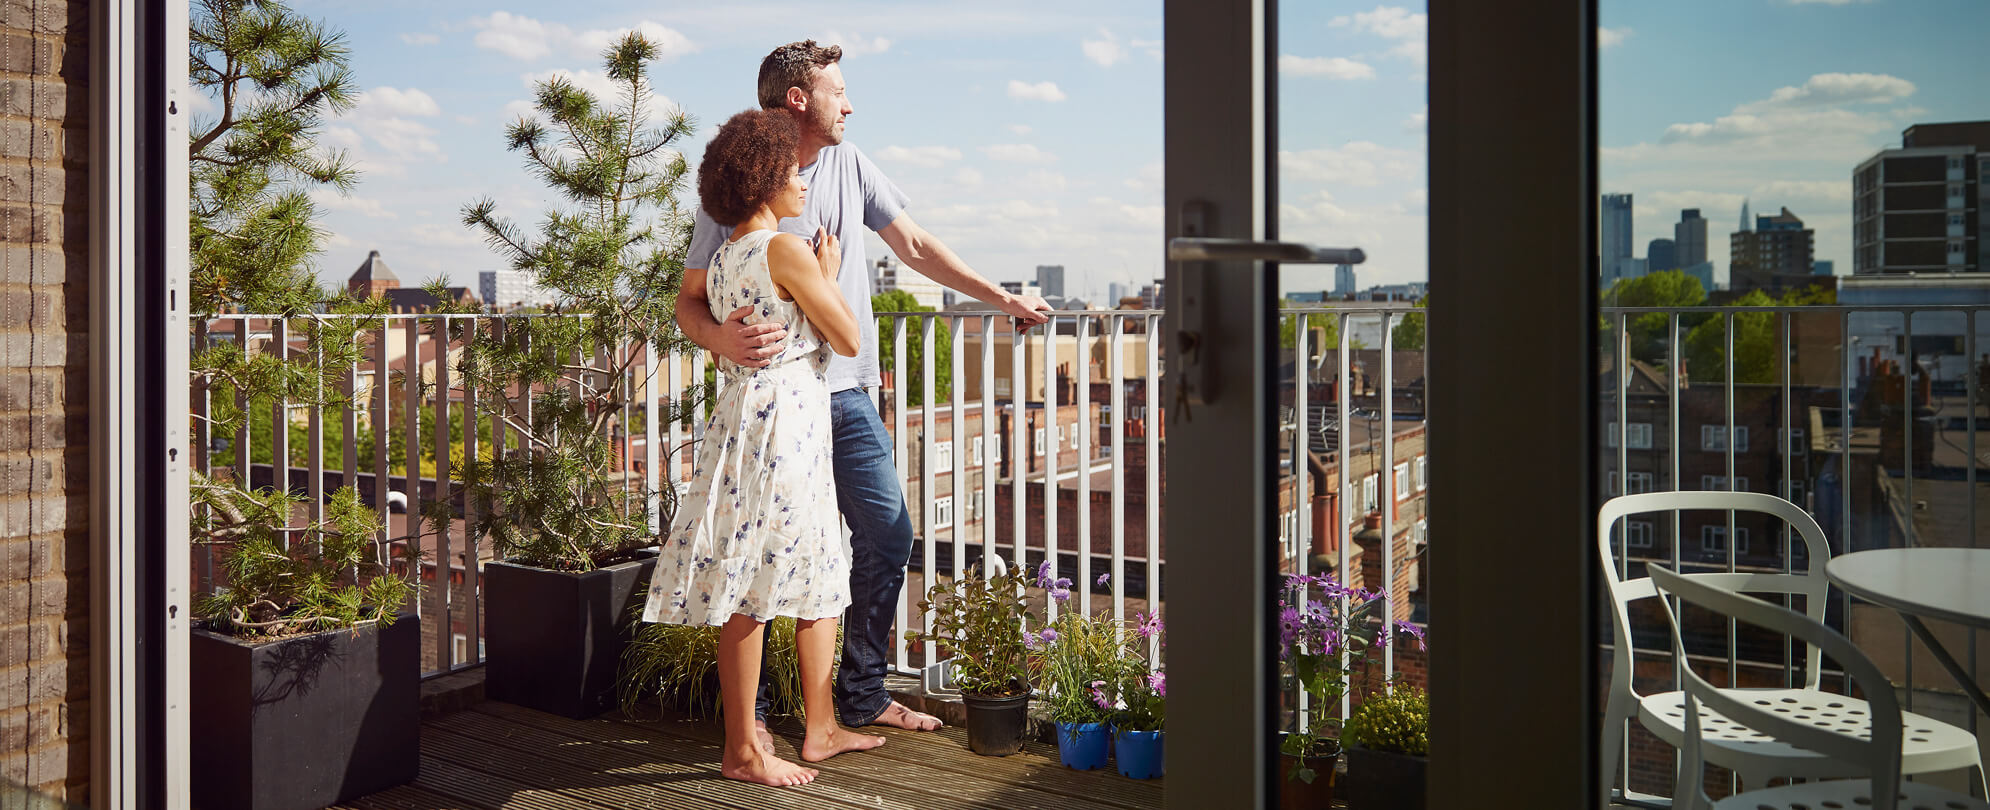 Couple on balcony looking out at city